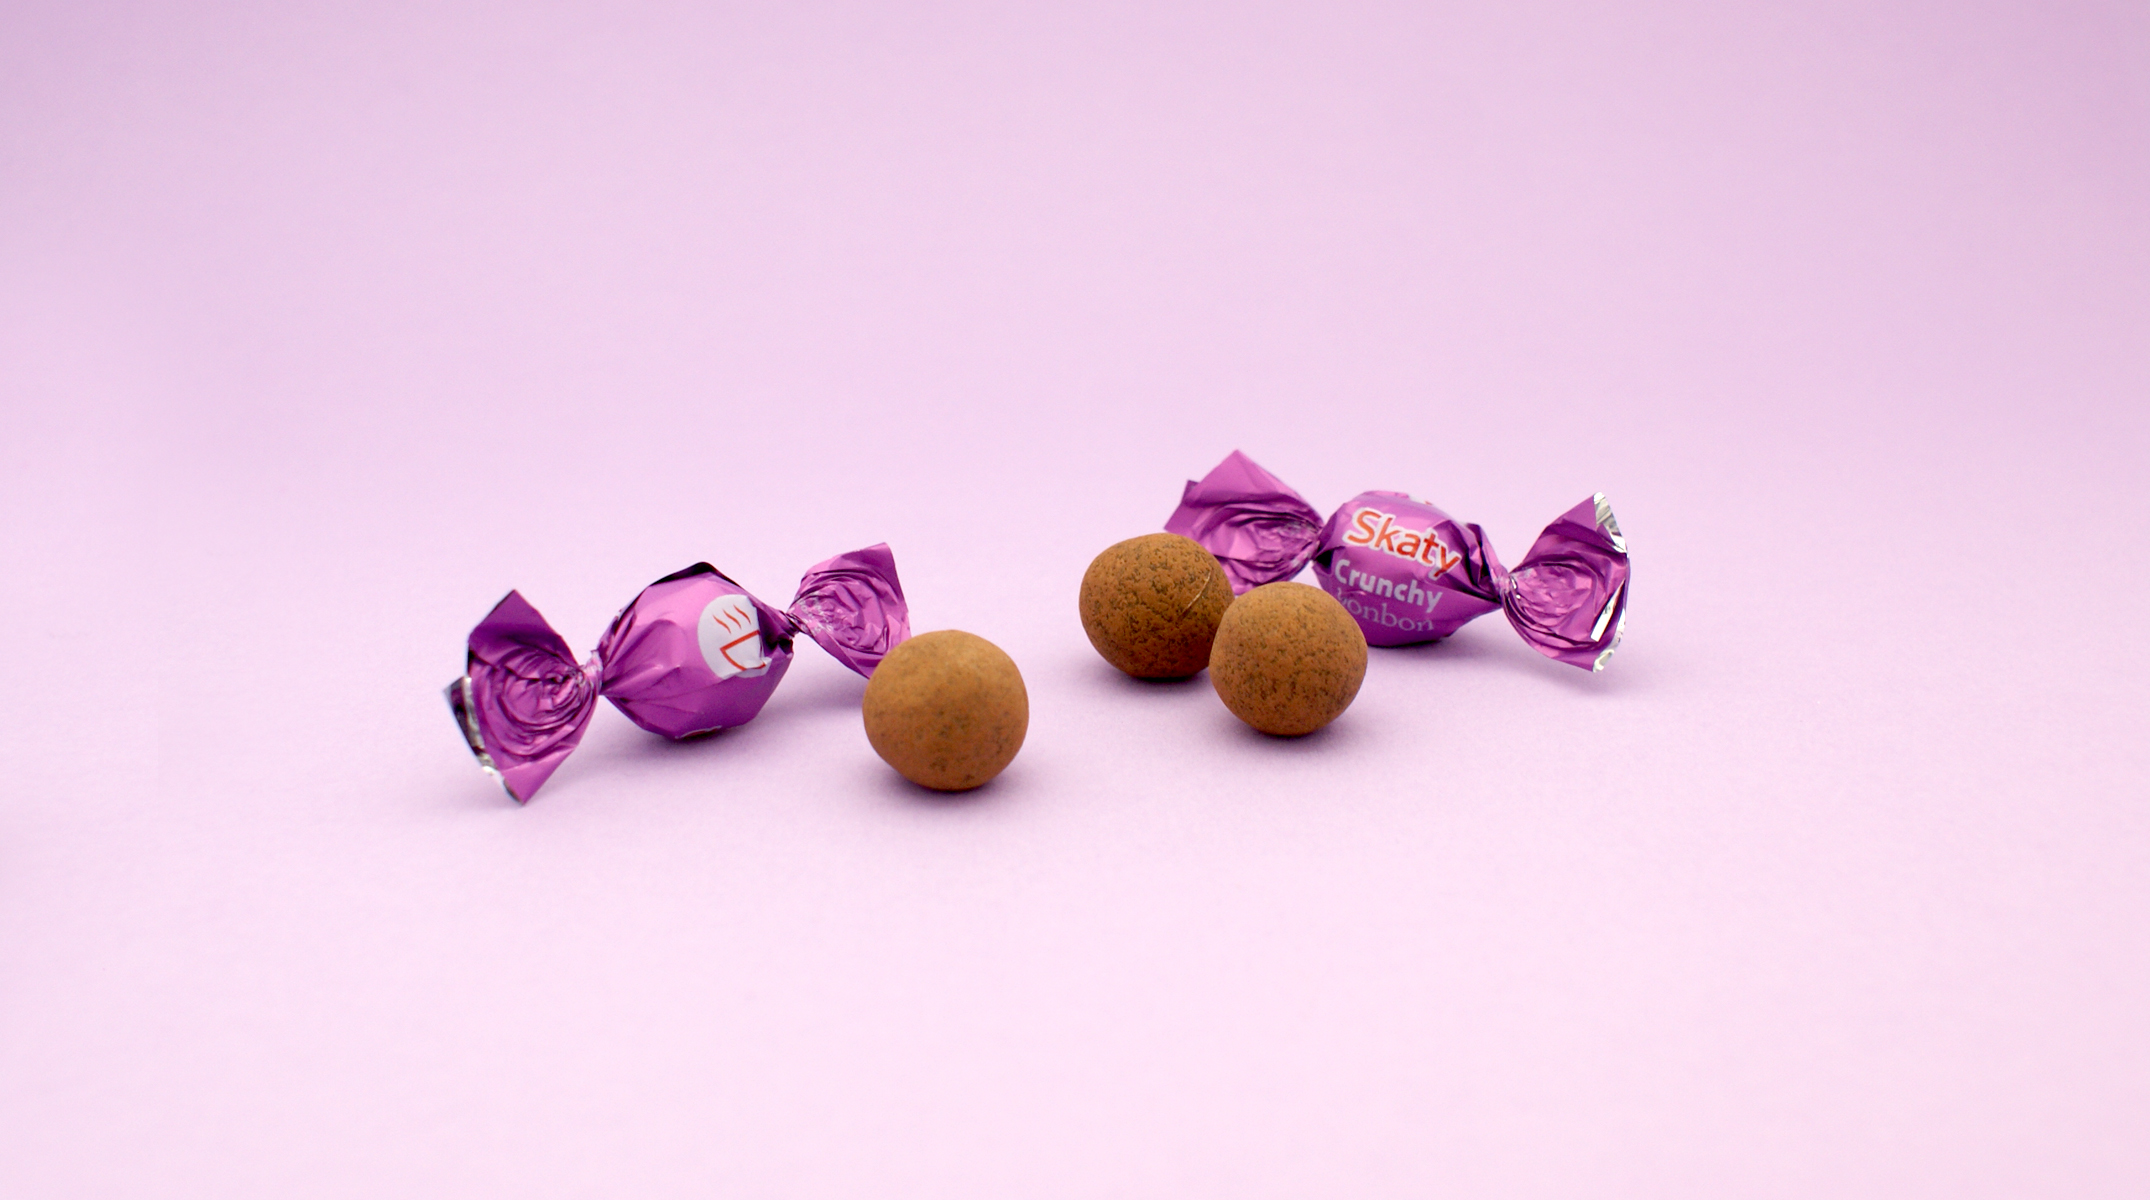 milk chocolate balls